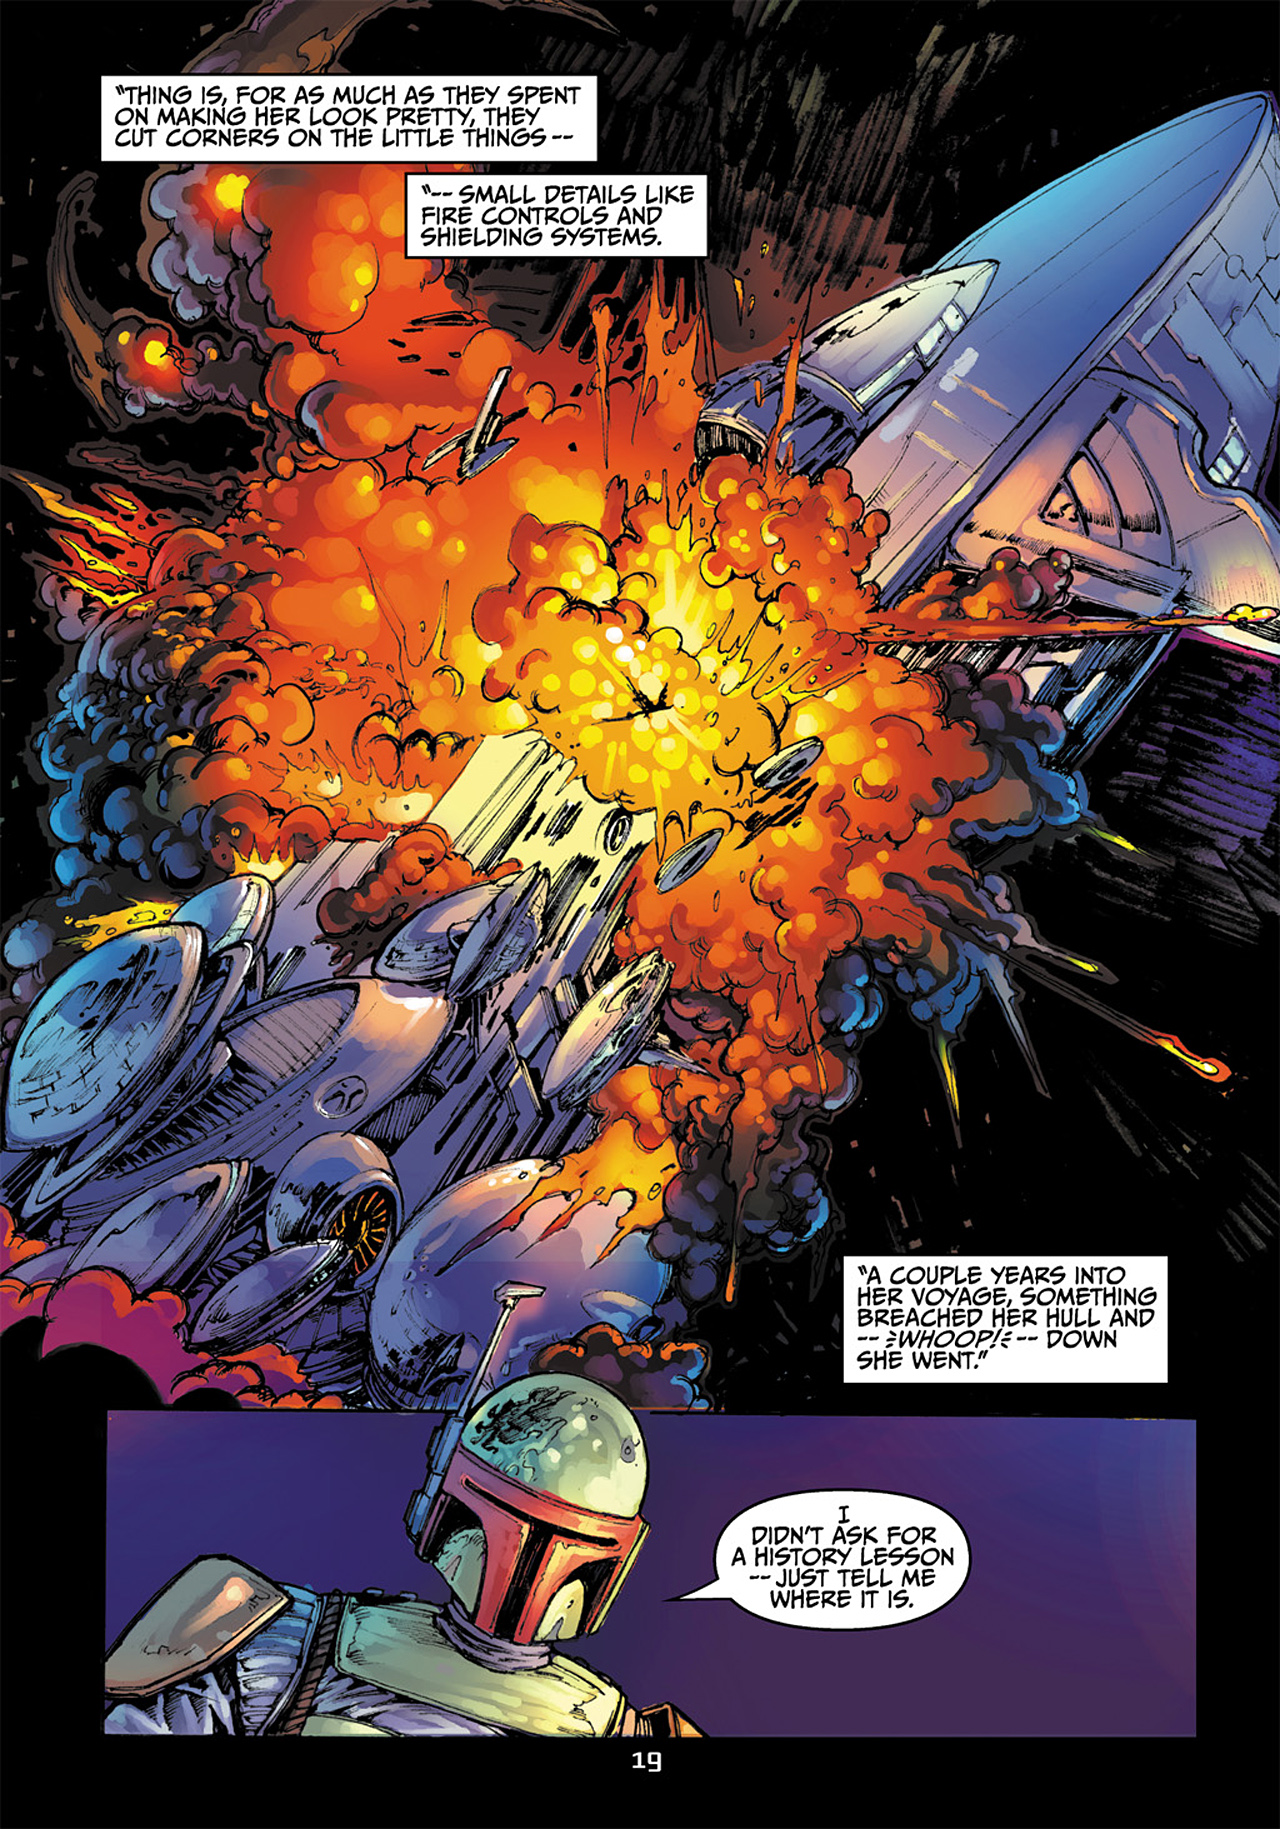 Read online Star Wars Adventures comic -  Issue # Issue Boba Fett and the Ship of Fear - 20